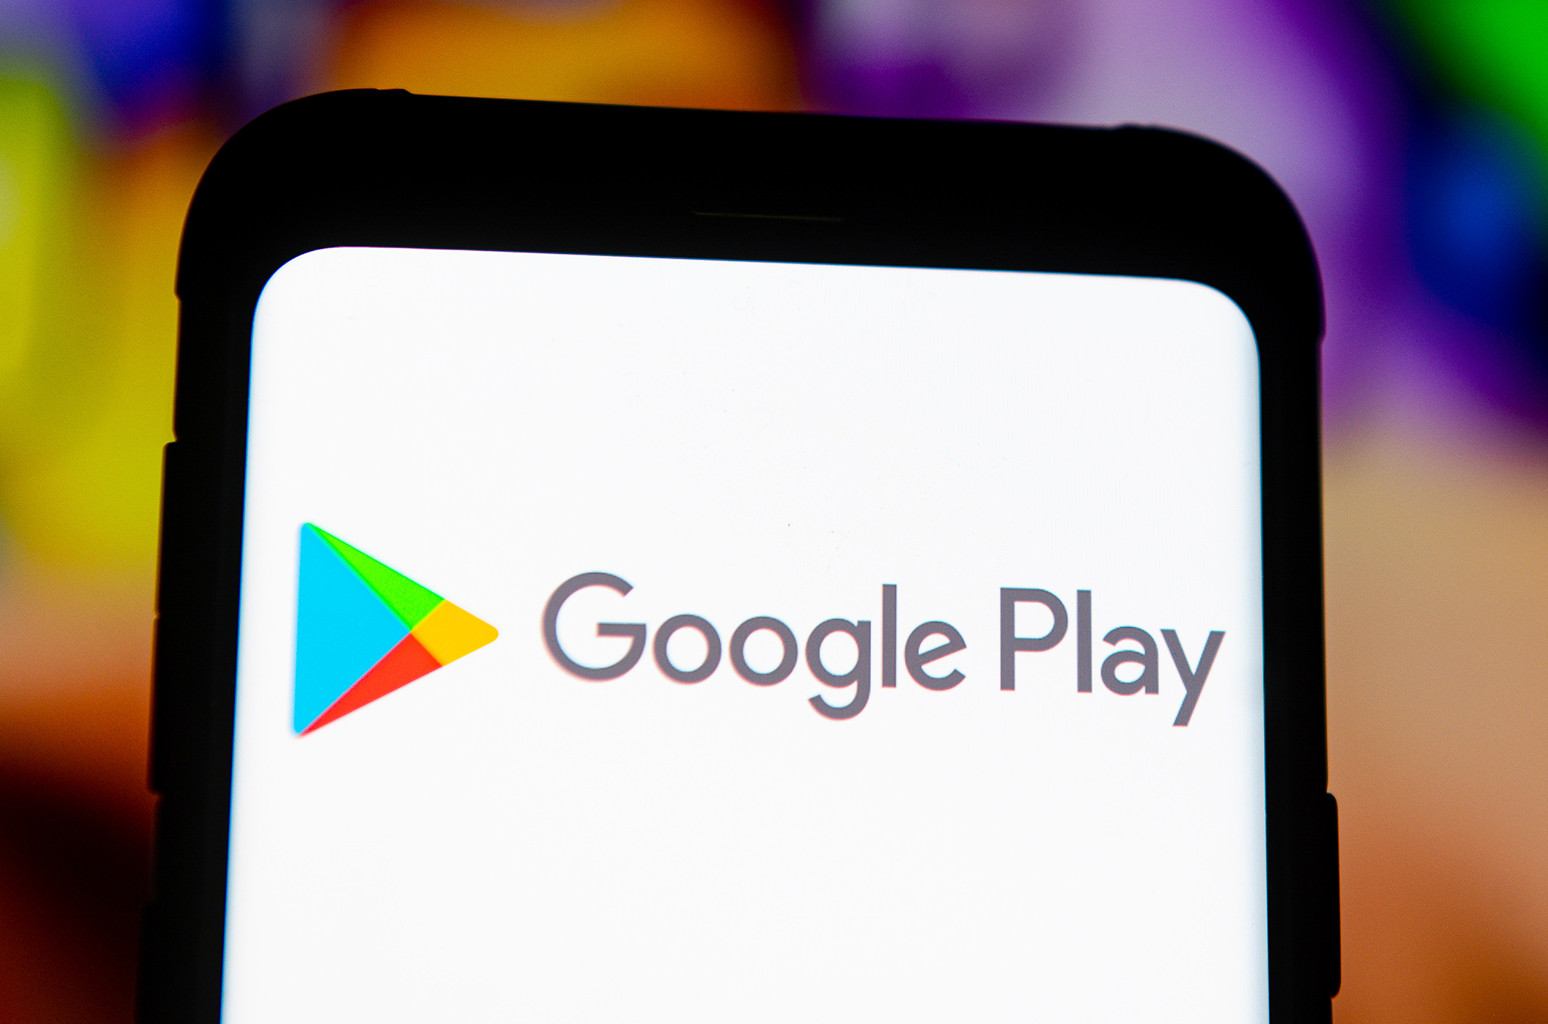 QnA VBage Google Play Cuts Fees for Subscription-Based Apps, Including Streaming Services